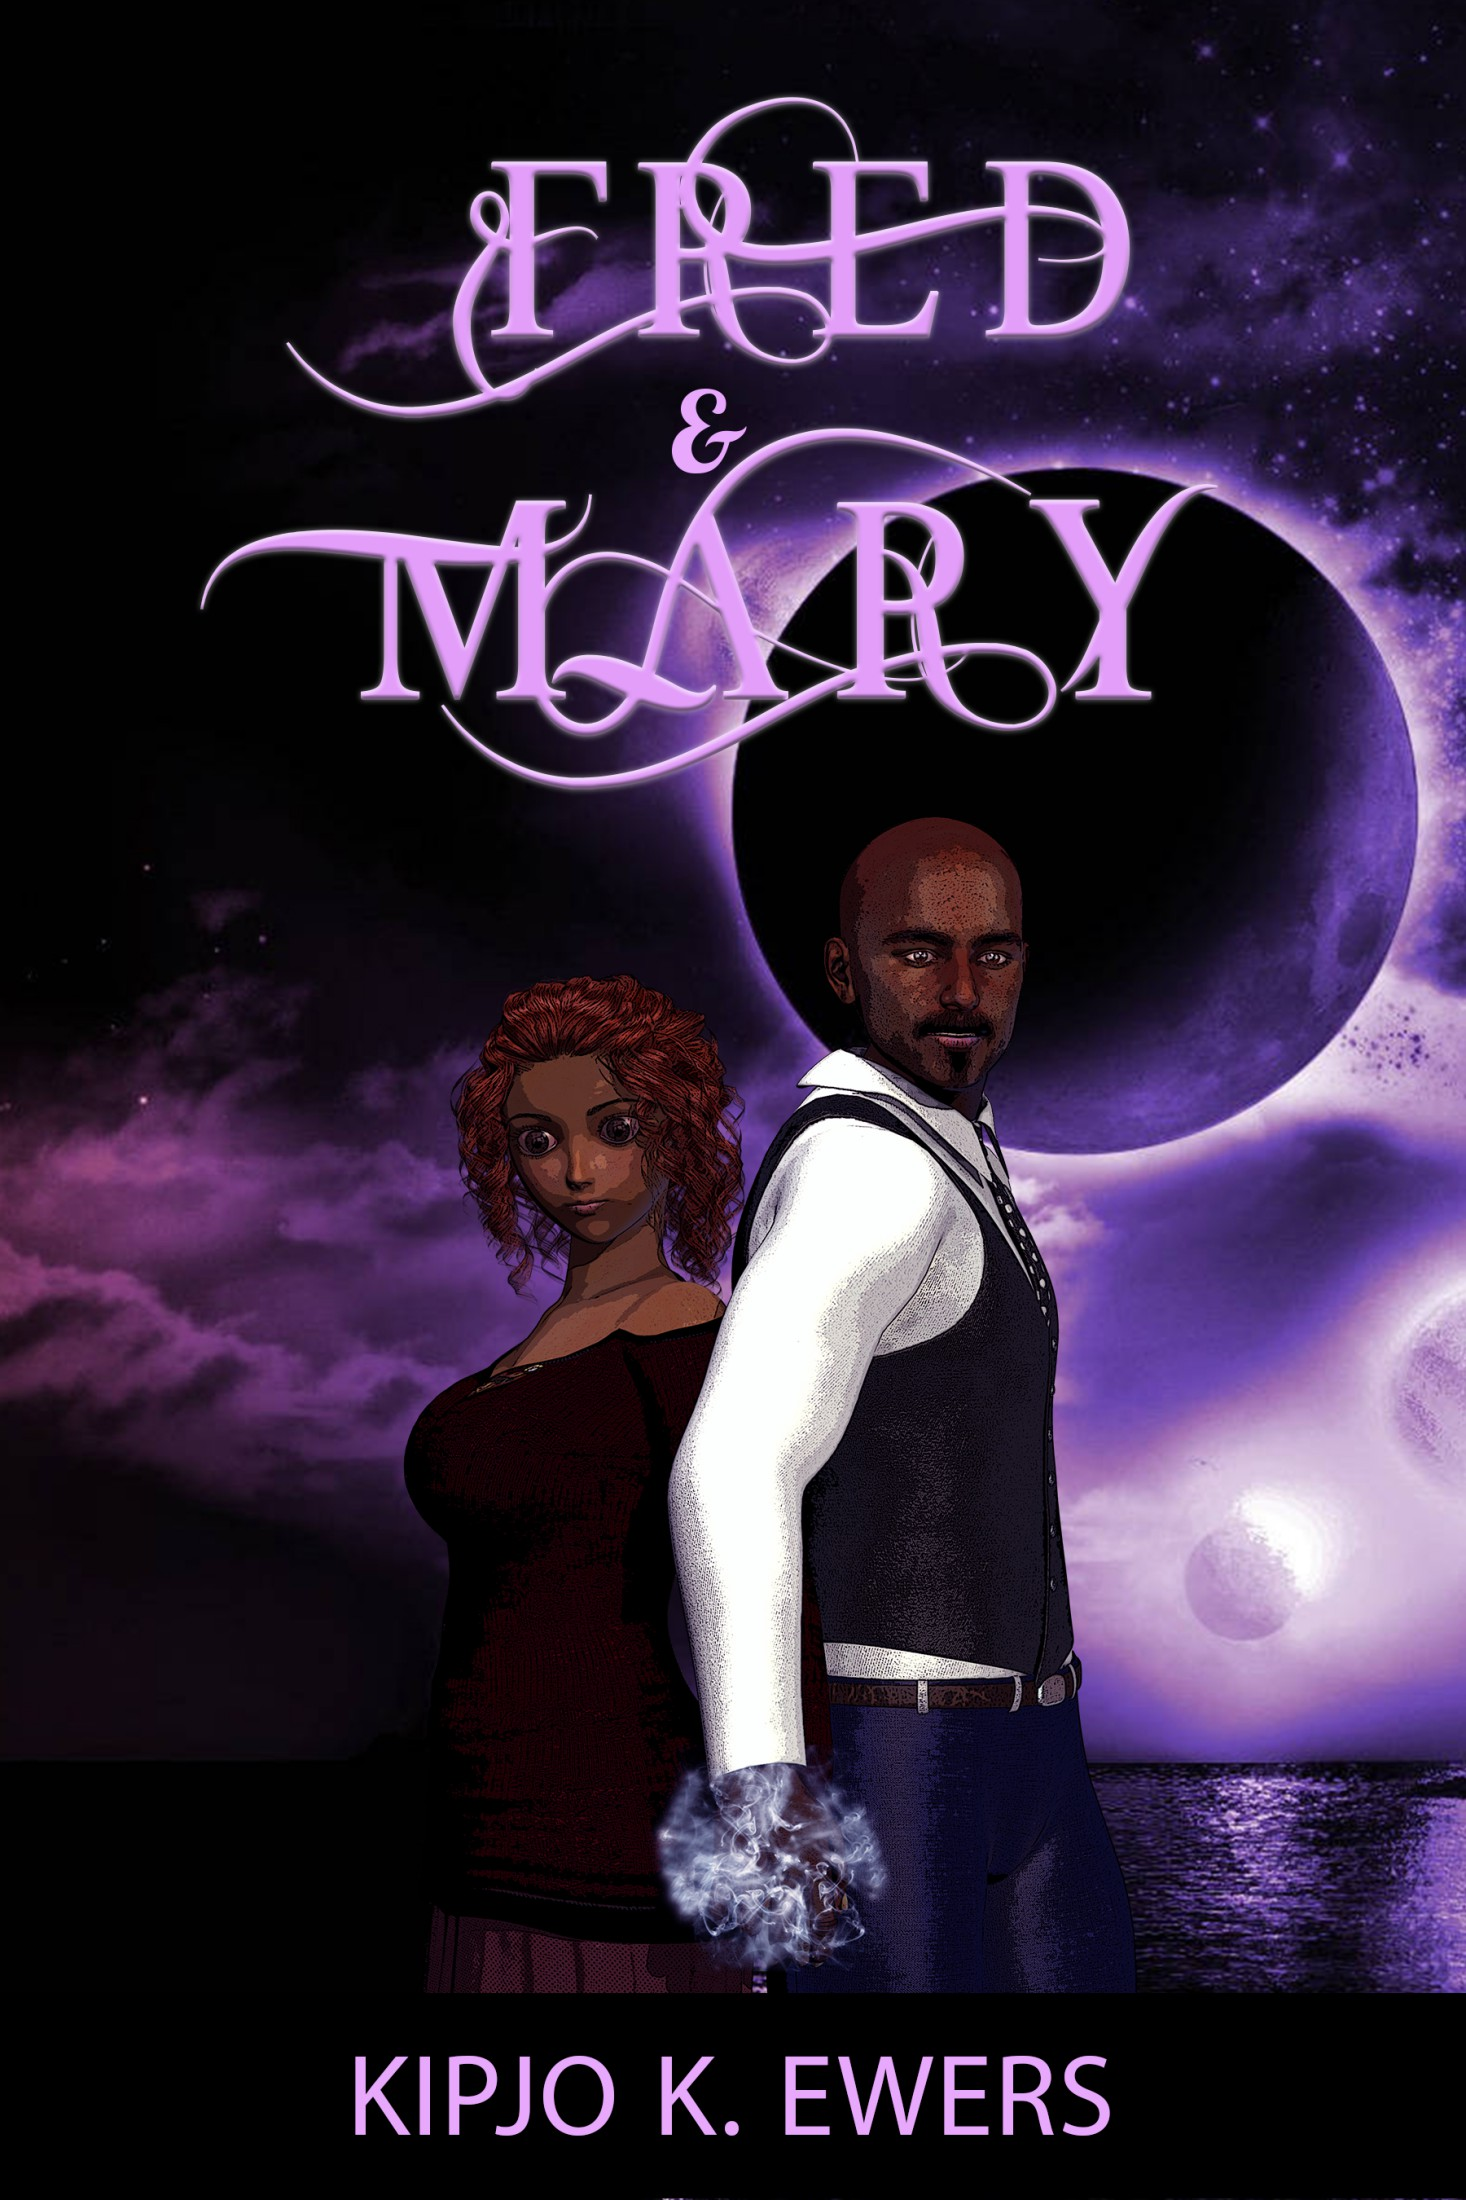 Fred & Mary